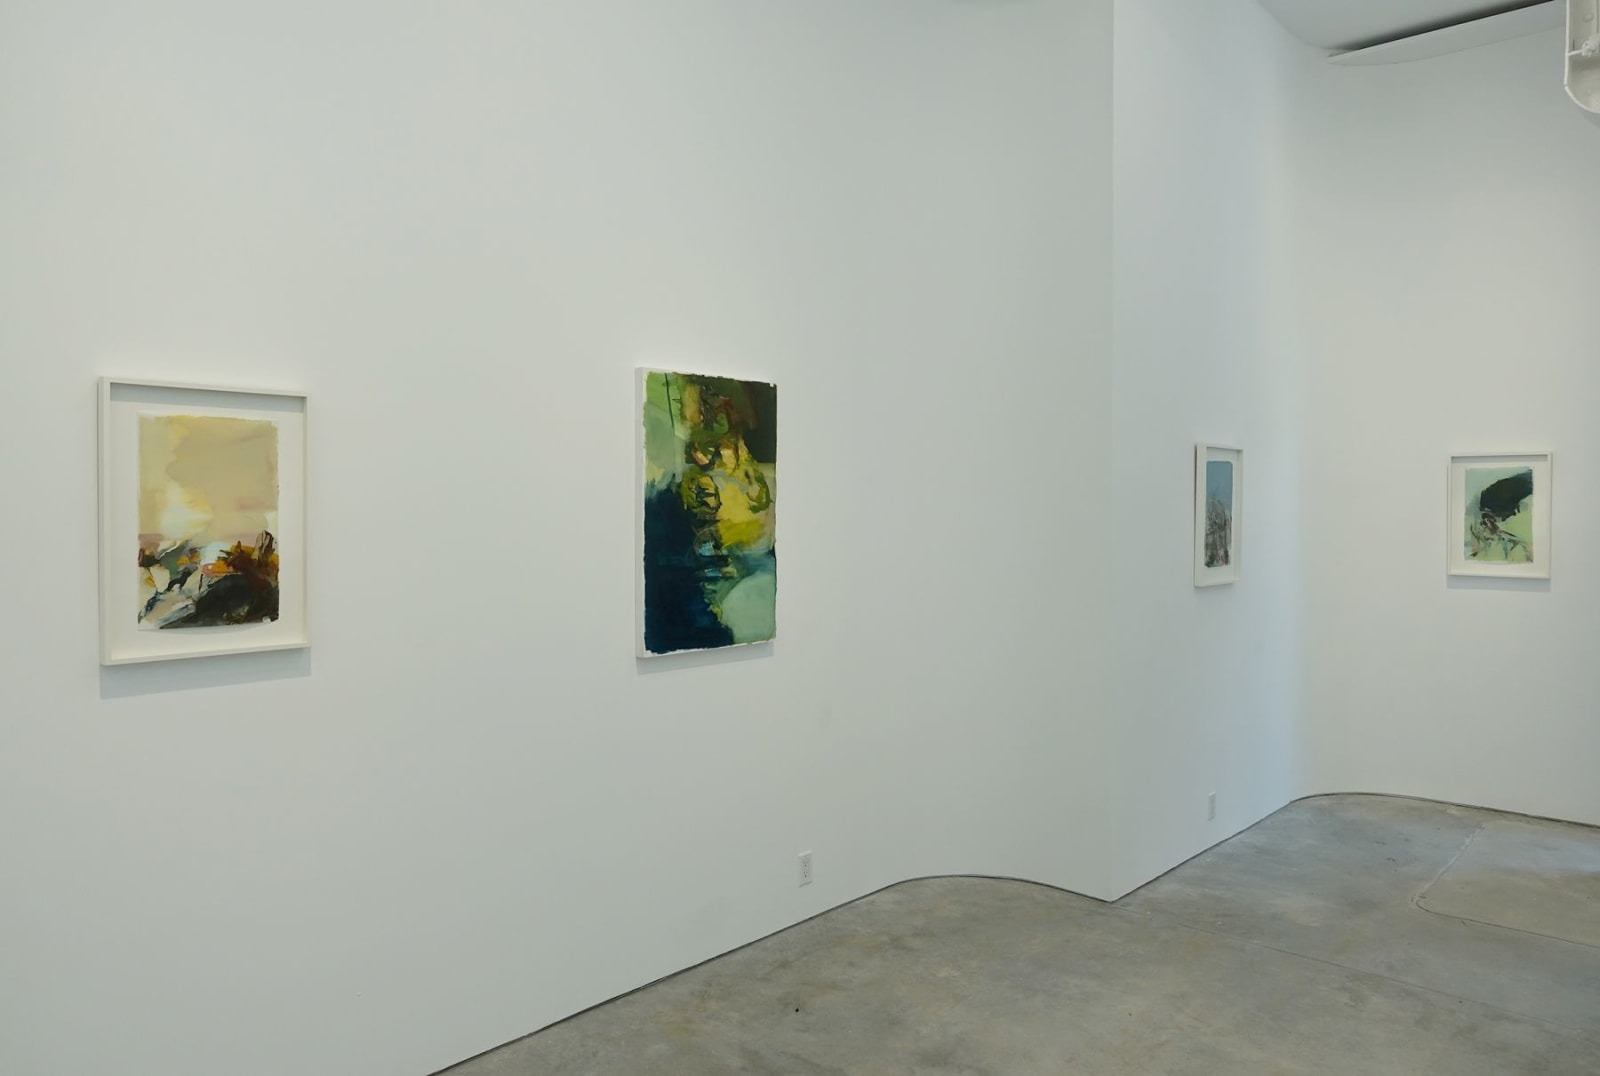 Installation view: Hollis Heichemer: Happenstance